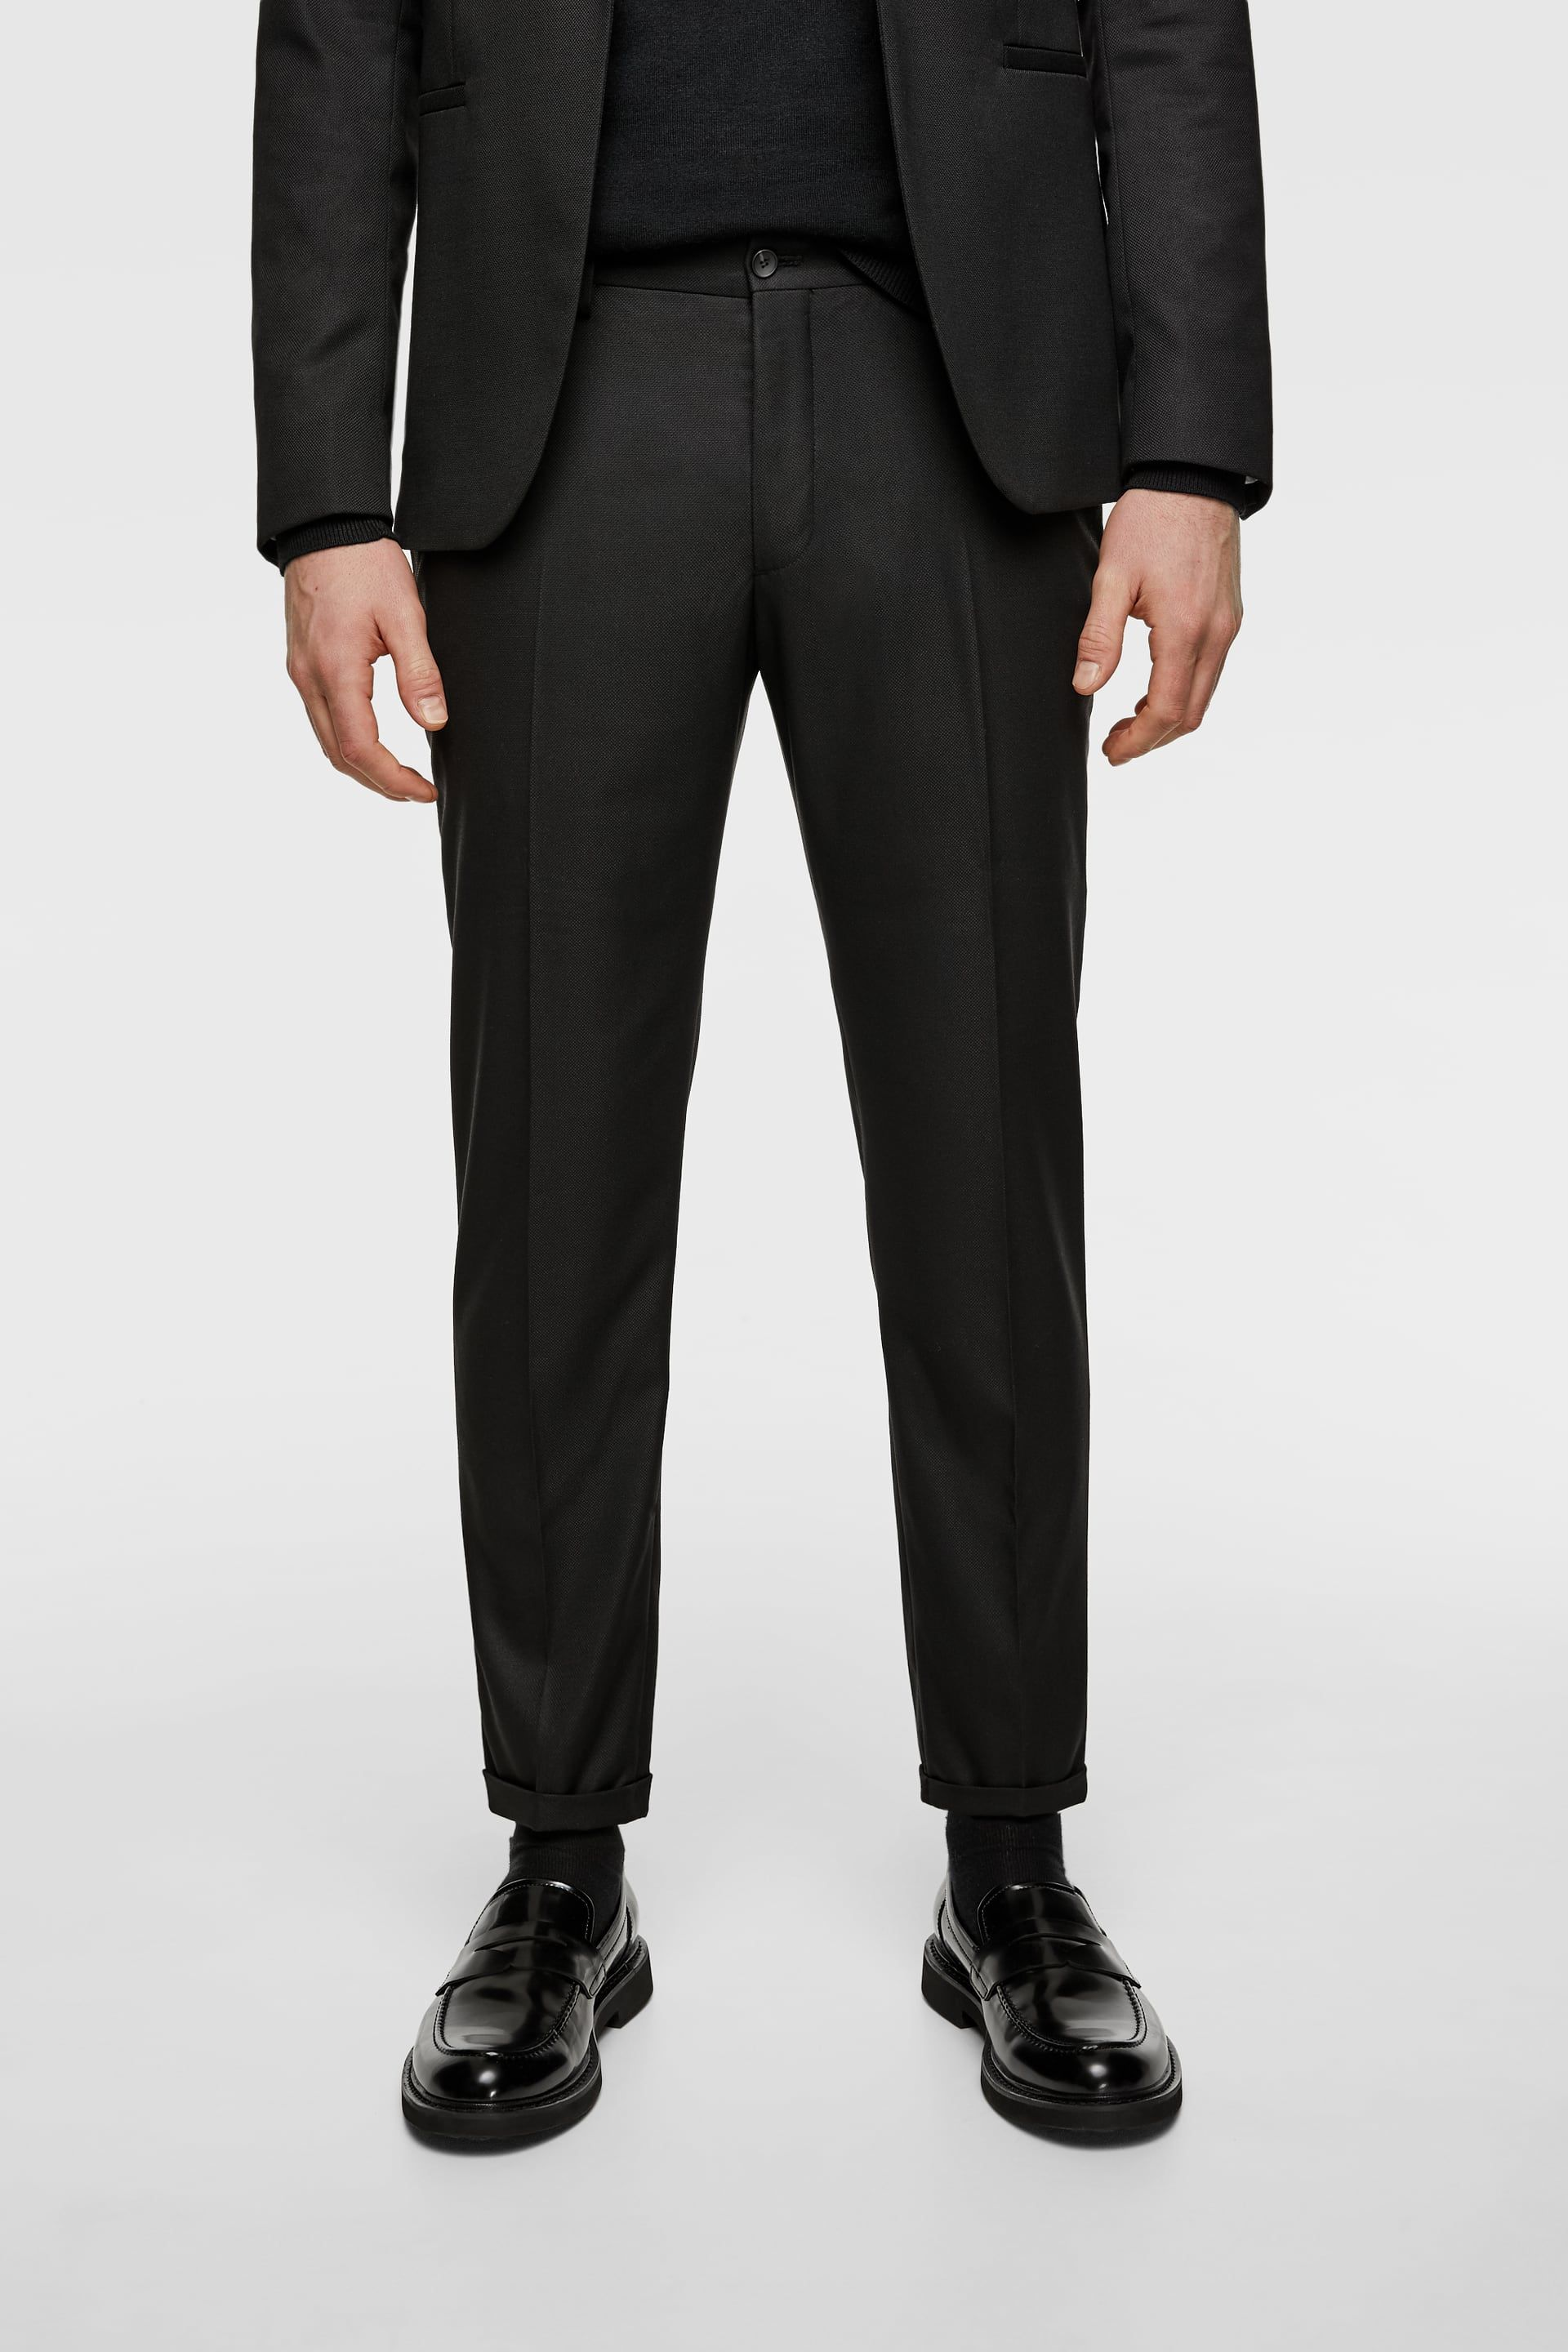 7901671b Textured cropped suit trousers in 2019 | Fits | Trouser suits ...